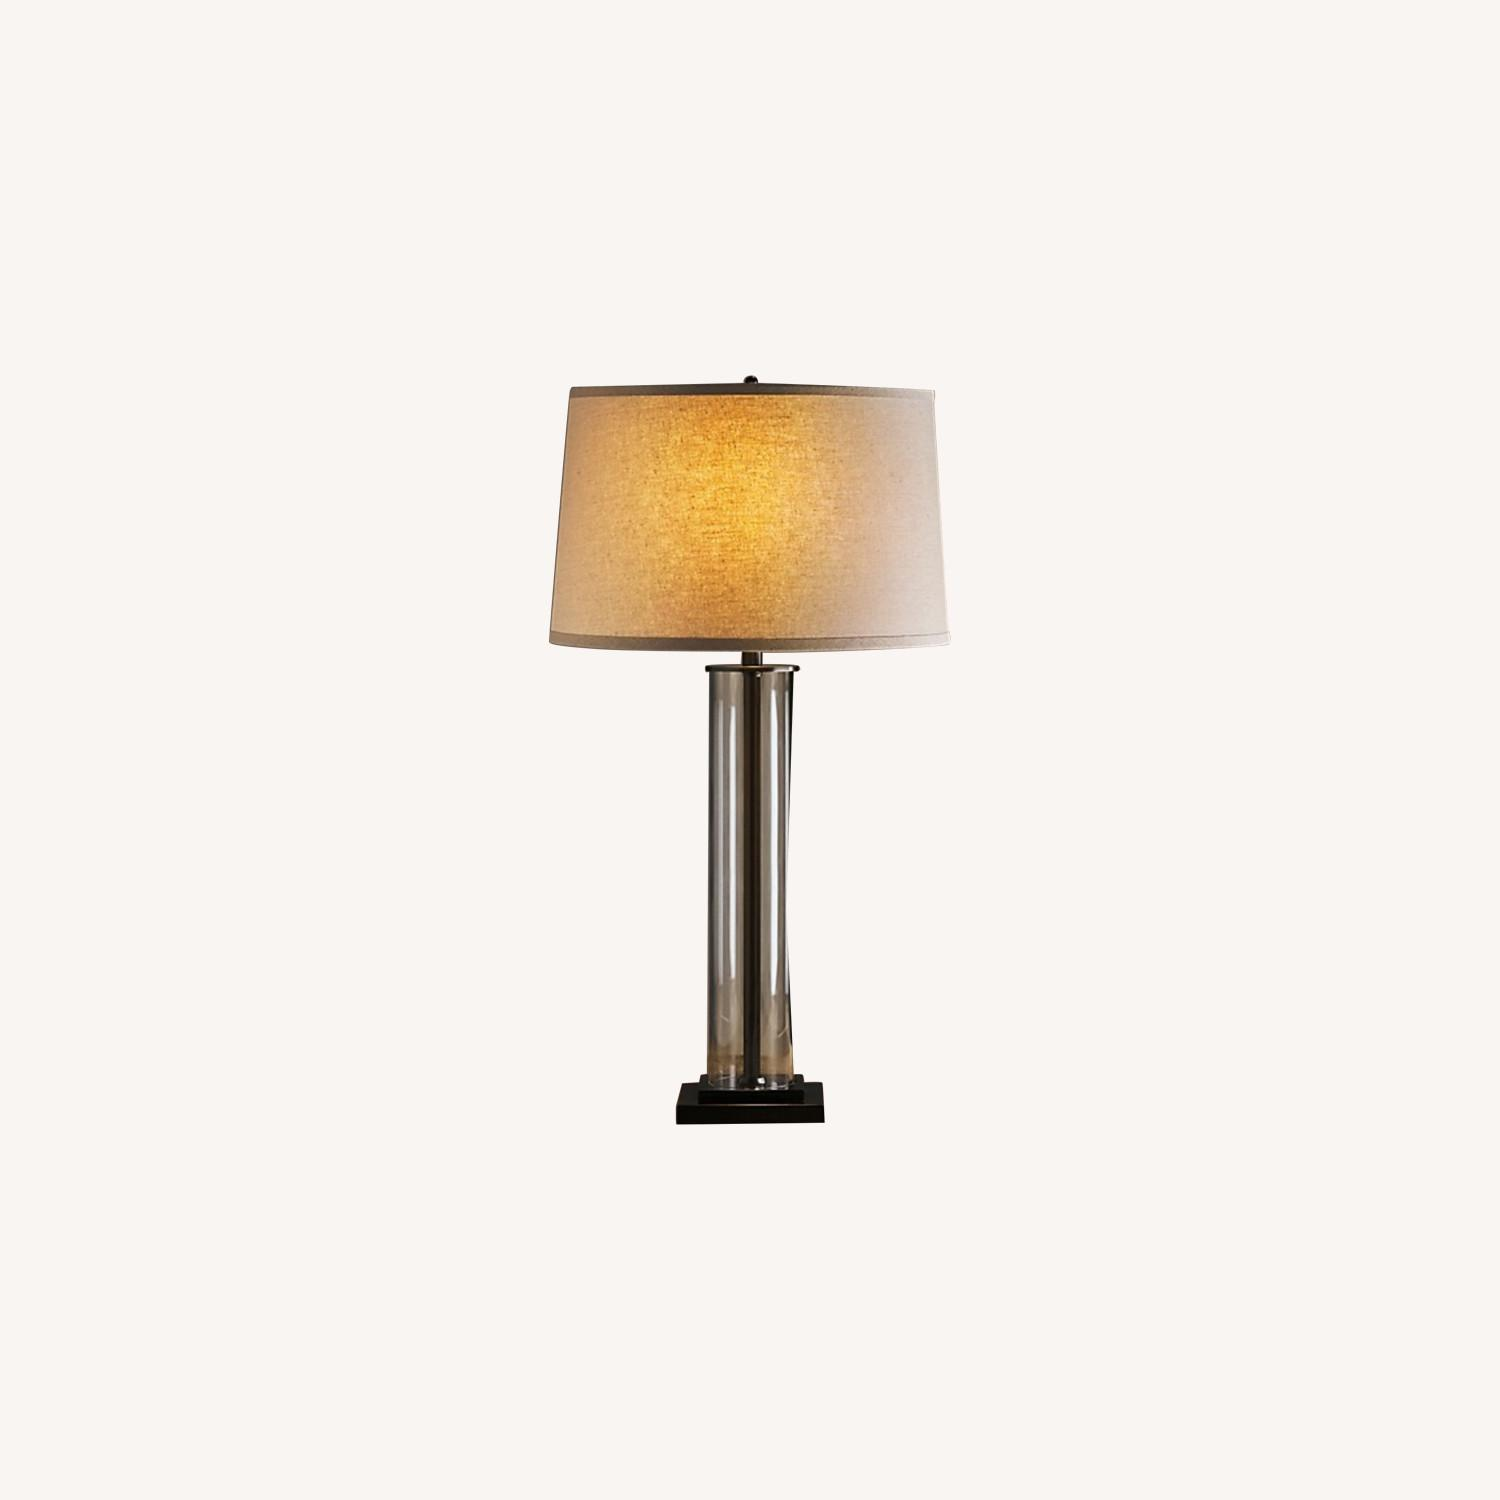 Restoration Hardware - 2 Table Lamps